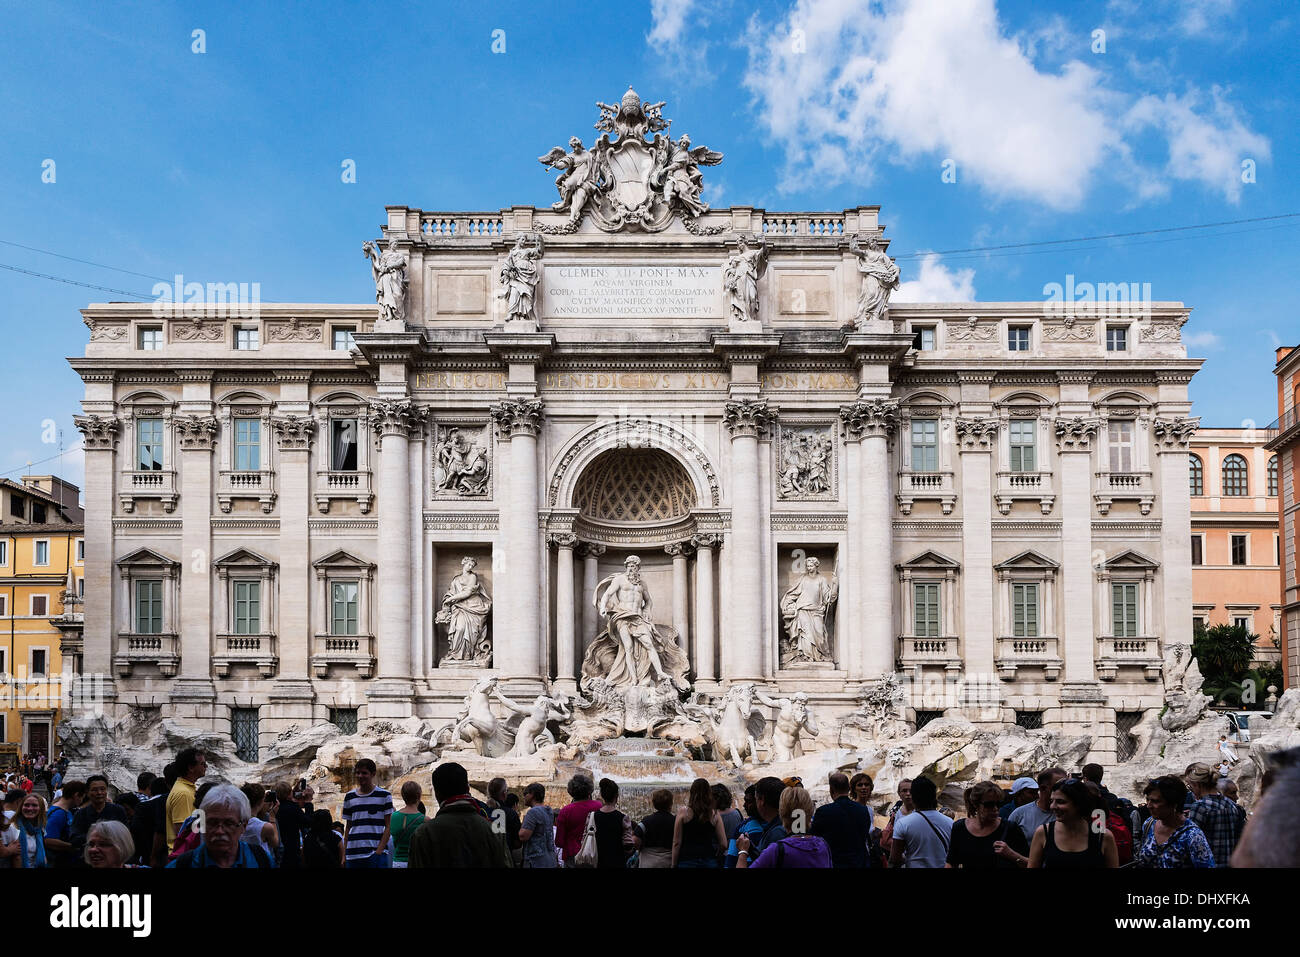 Tourists gather to admire the Trevi Fountain, Rome, Italy - Stock Image